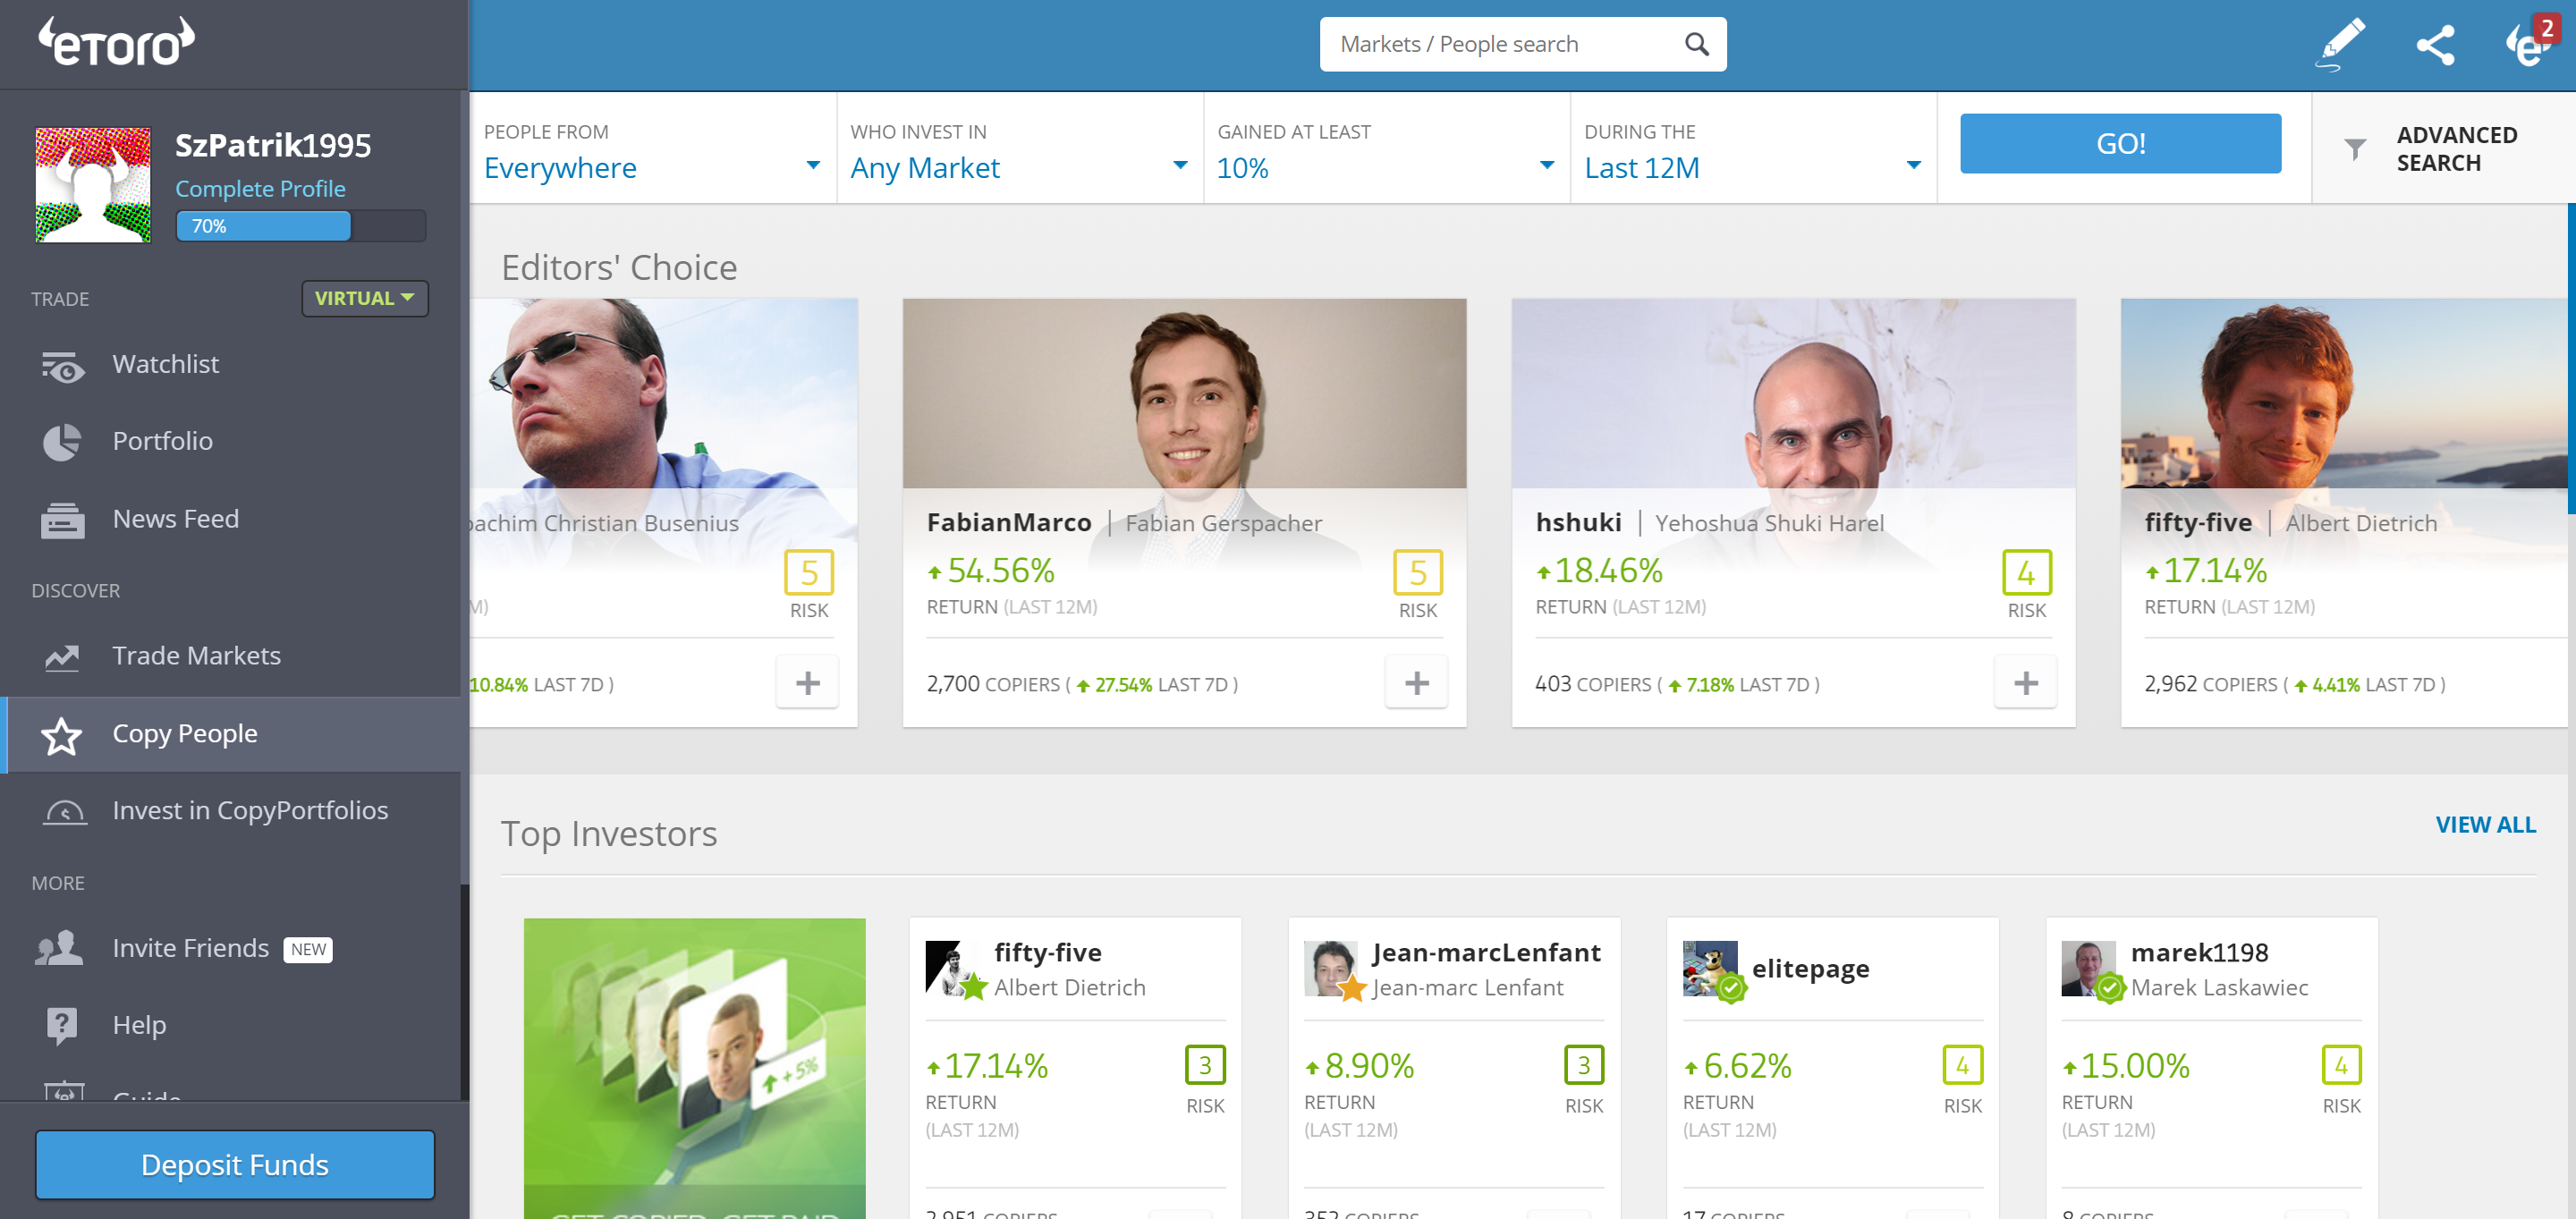 Etoro review - Markets and products - copy trading